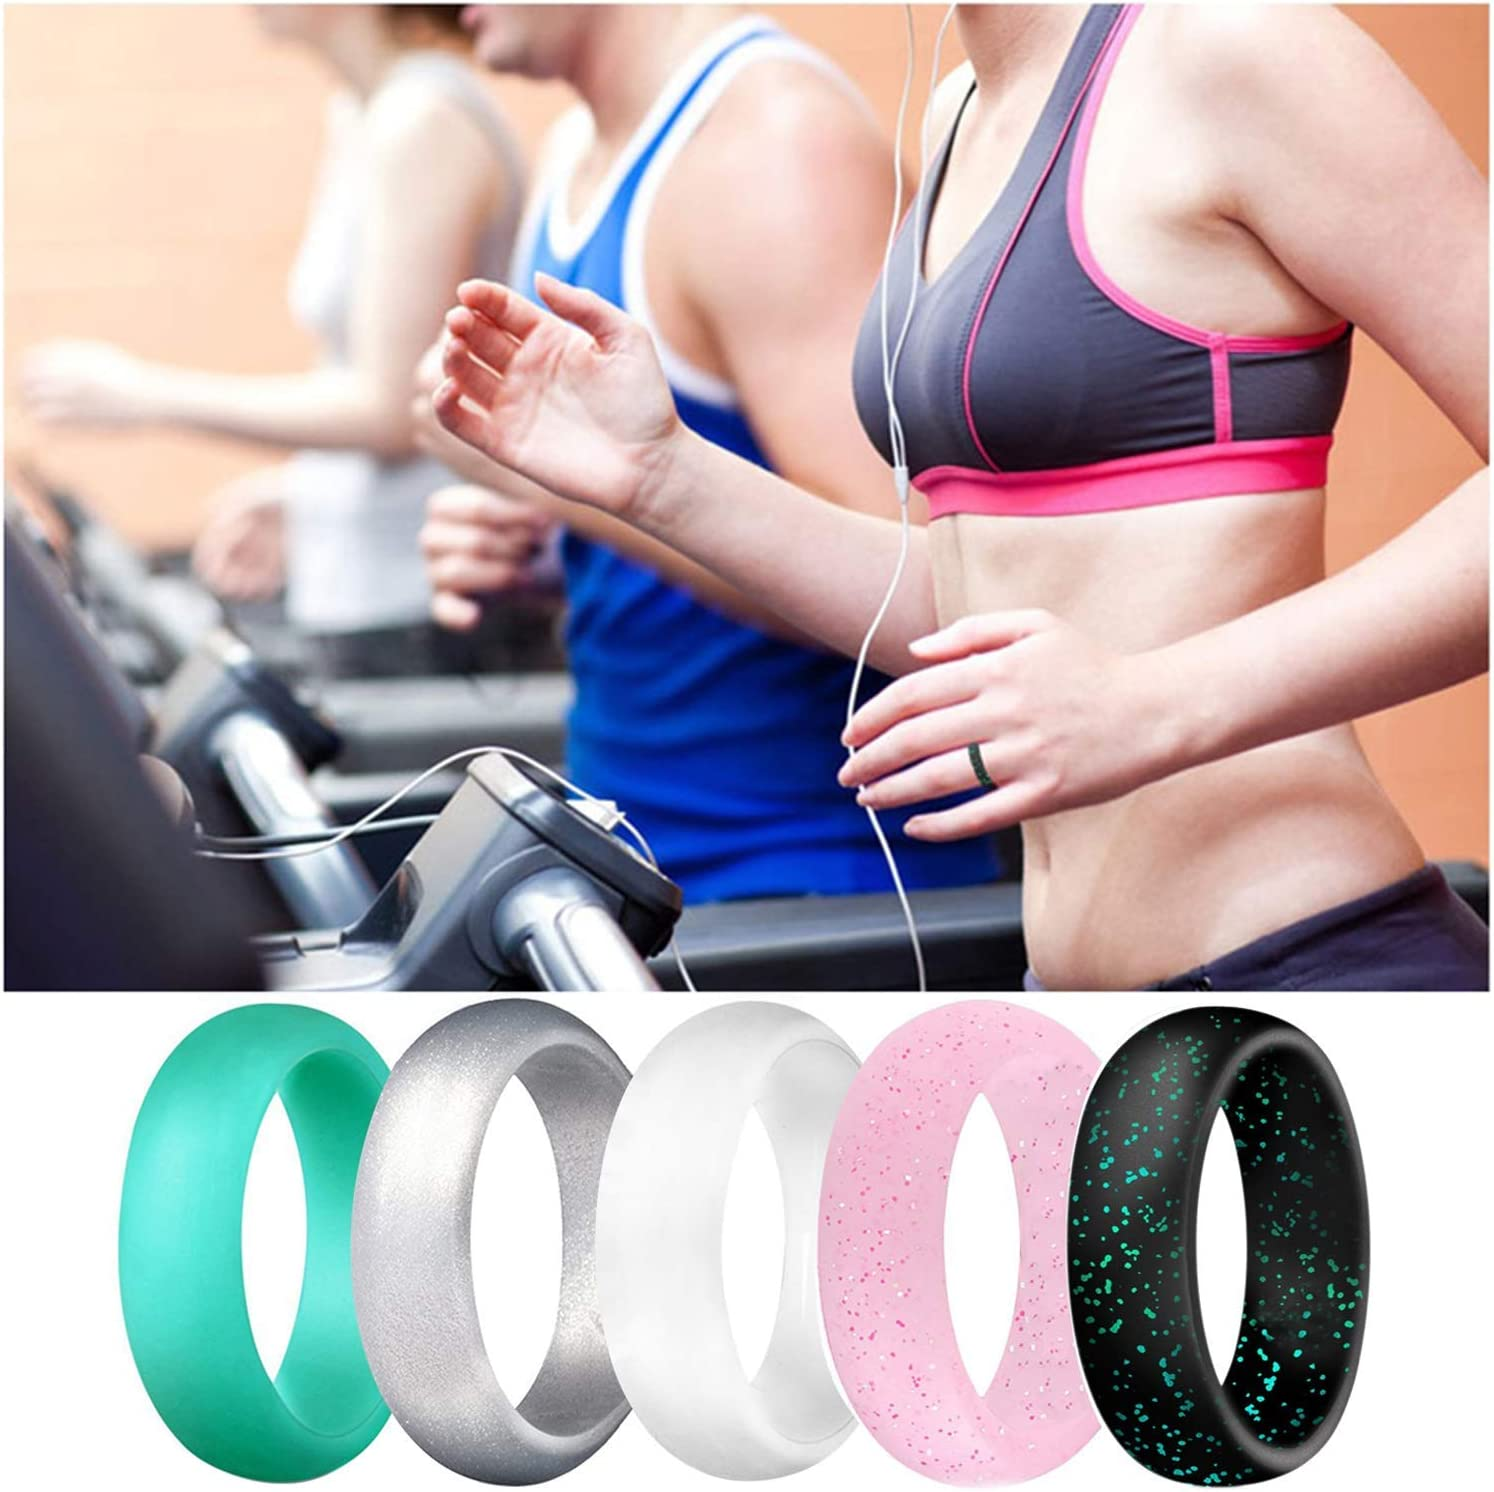 HDSUDCG Silicone Wedding Ring Bands for Women 12 Pack Size 4 5 6 7 8 9 Womens Thin Stackable /& Glitter Powder Rubber Wedding Band Rings 5.7mm /& 3mm Wide